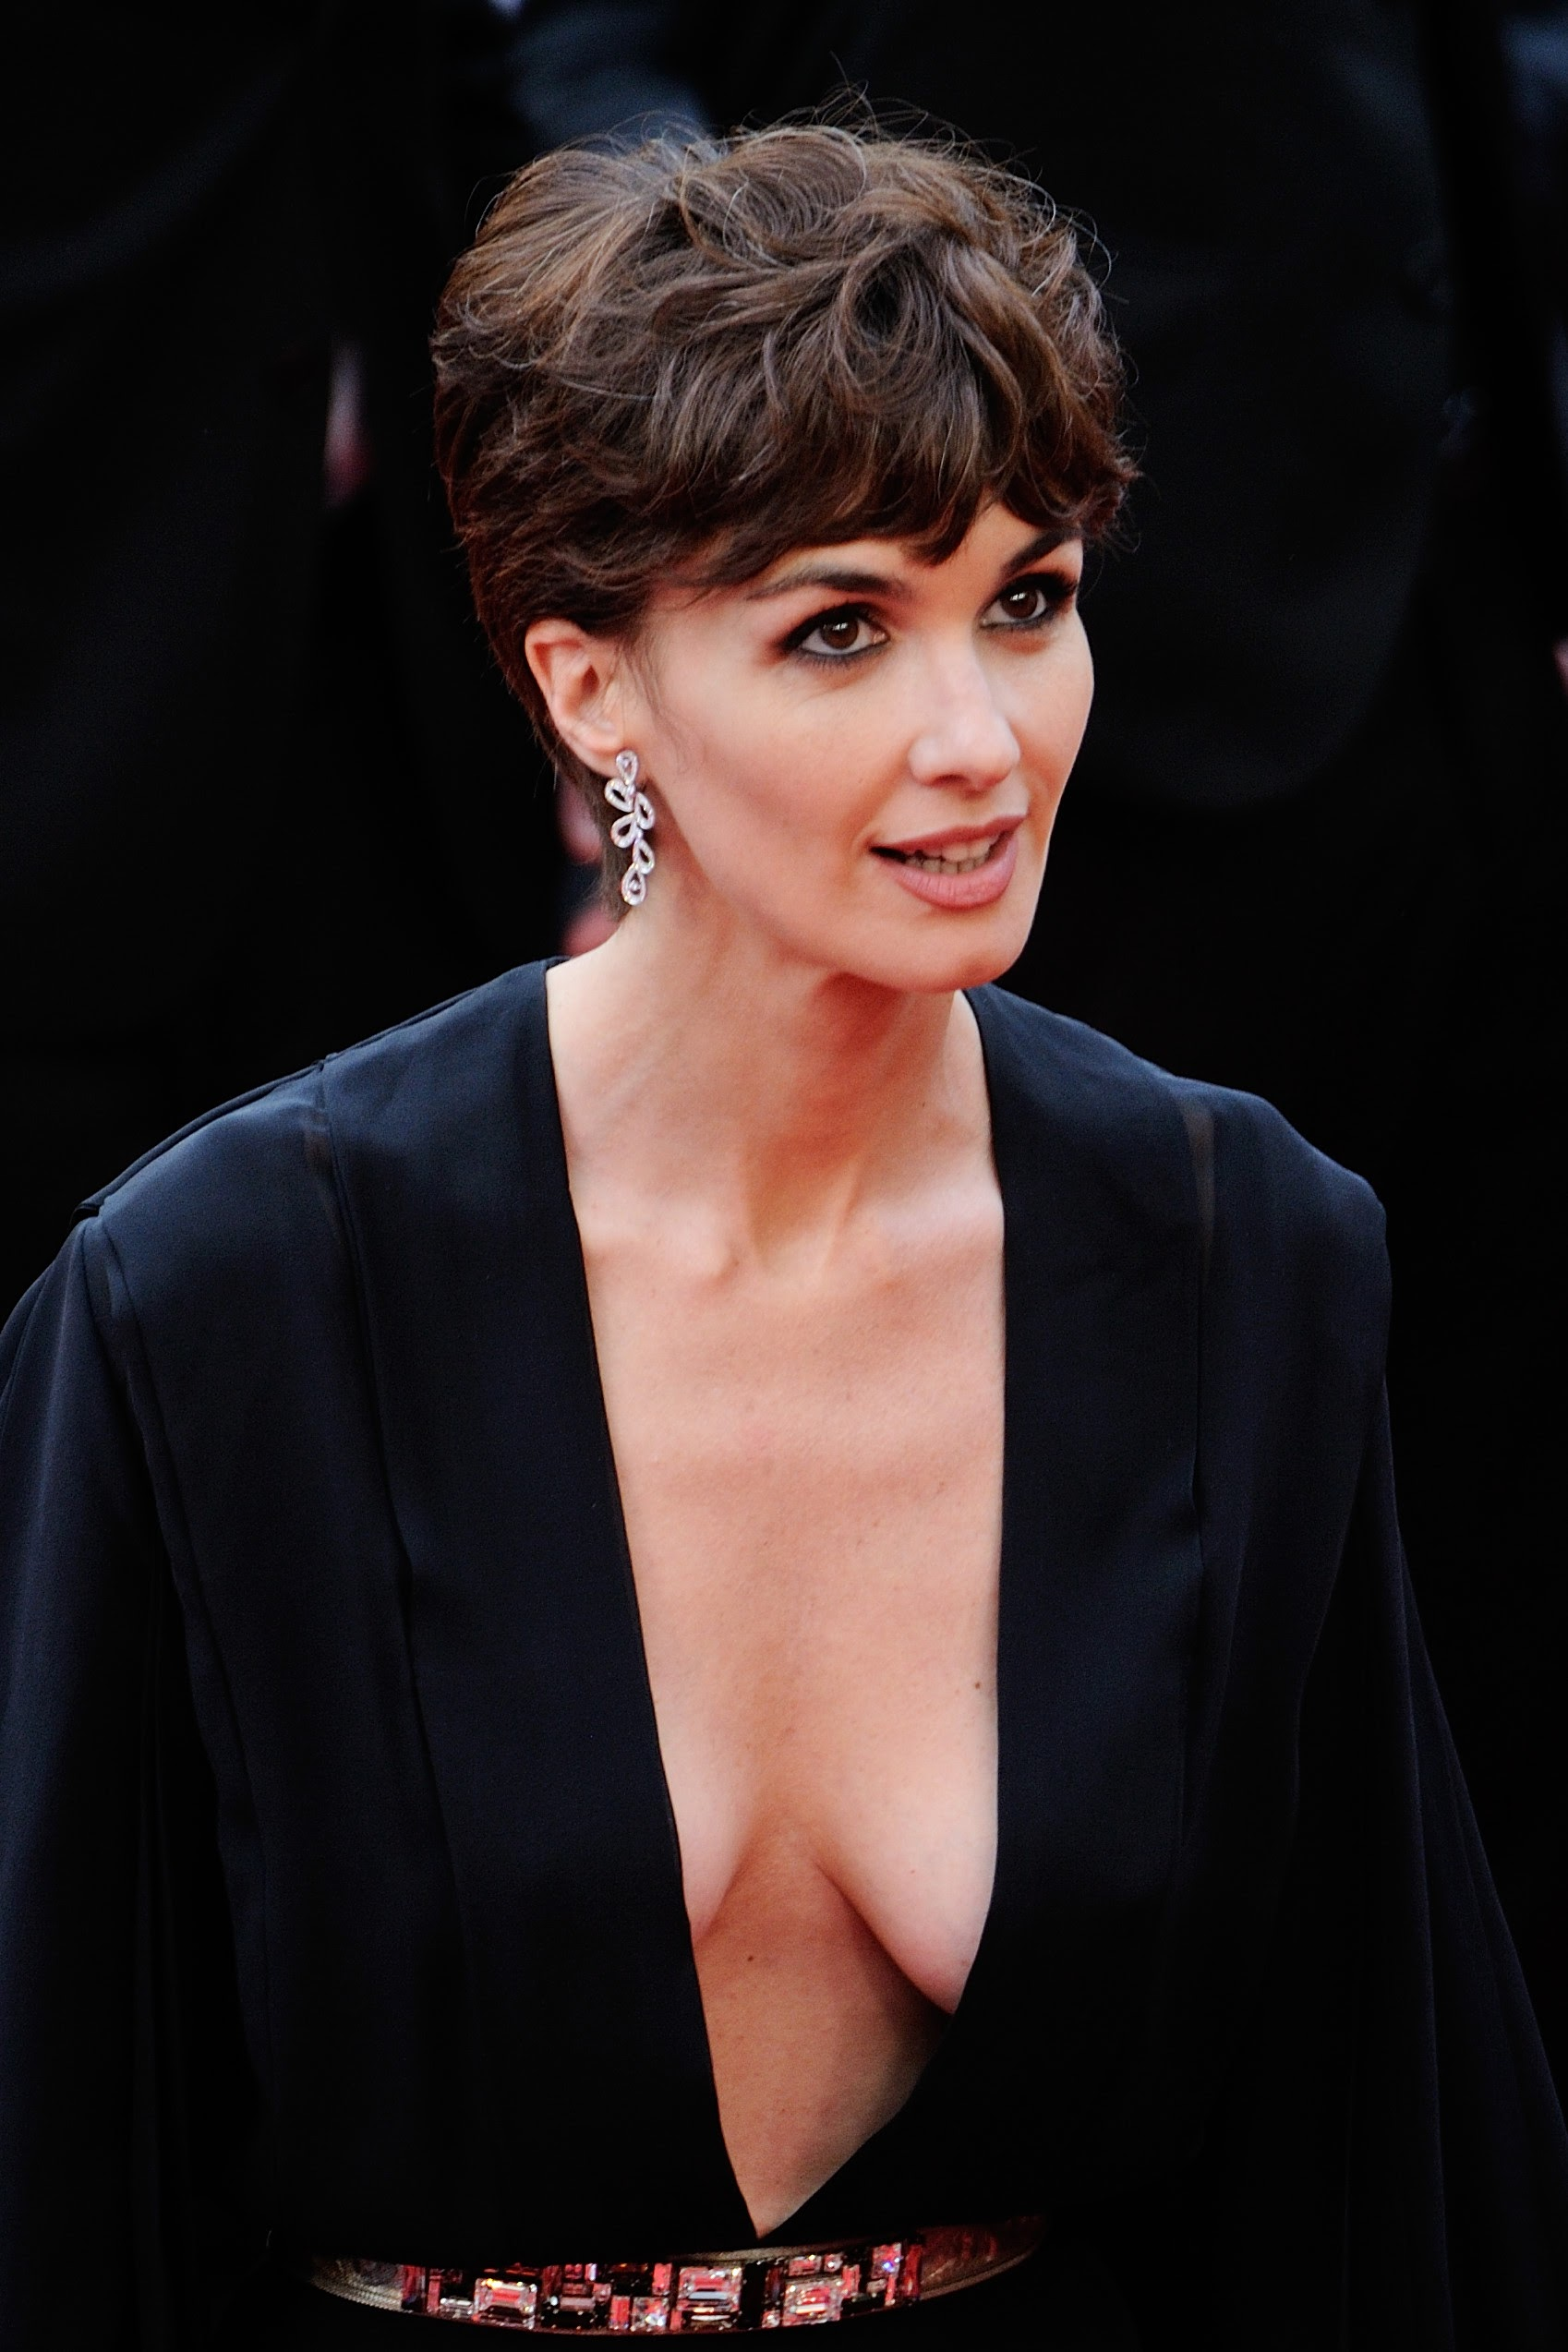 Paz Vega nudes (83 photo), images Tits, Instagram, cleavage 2017